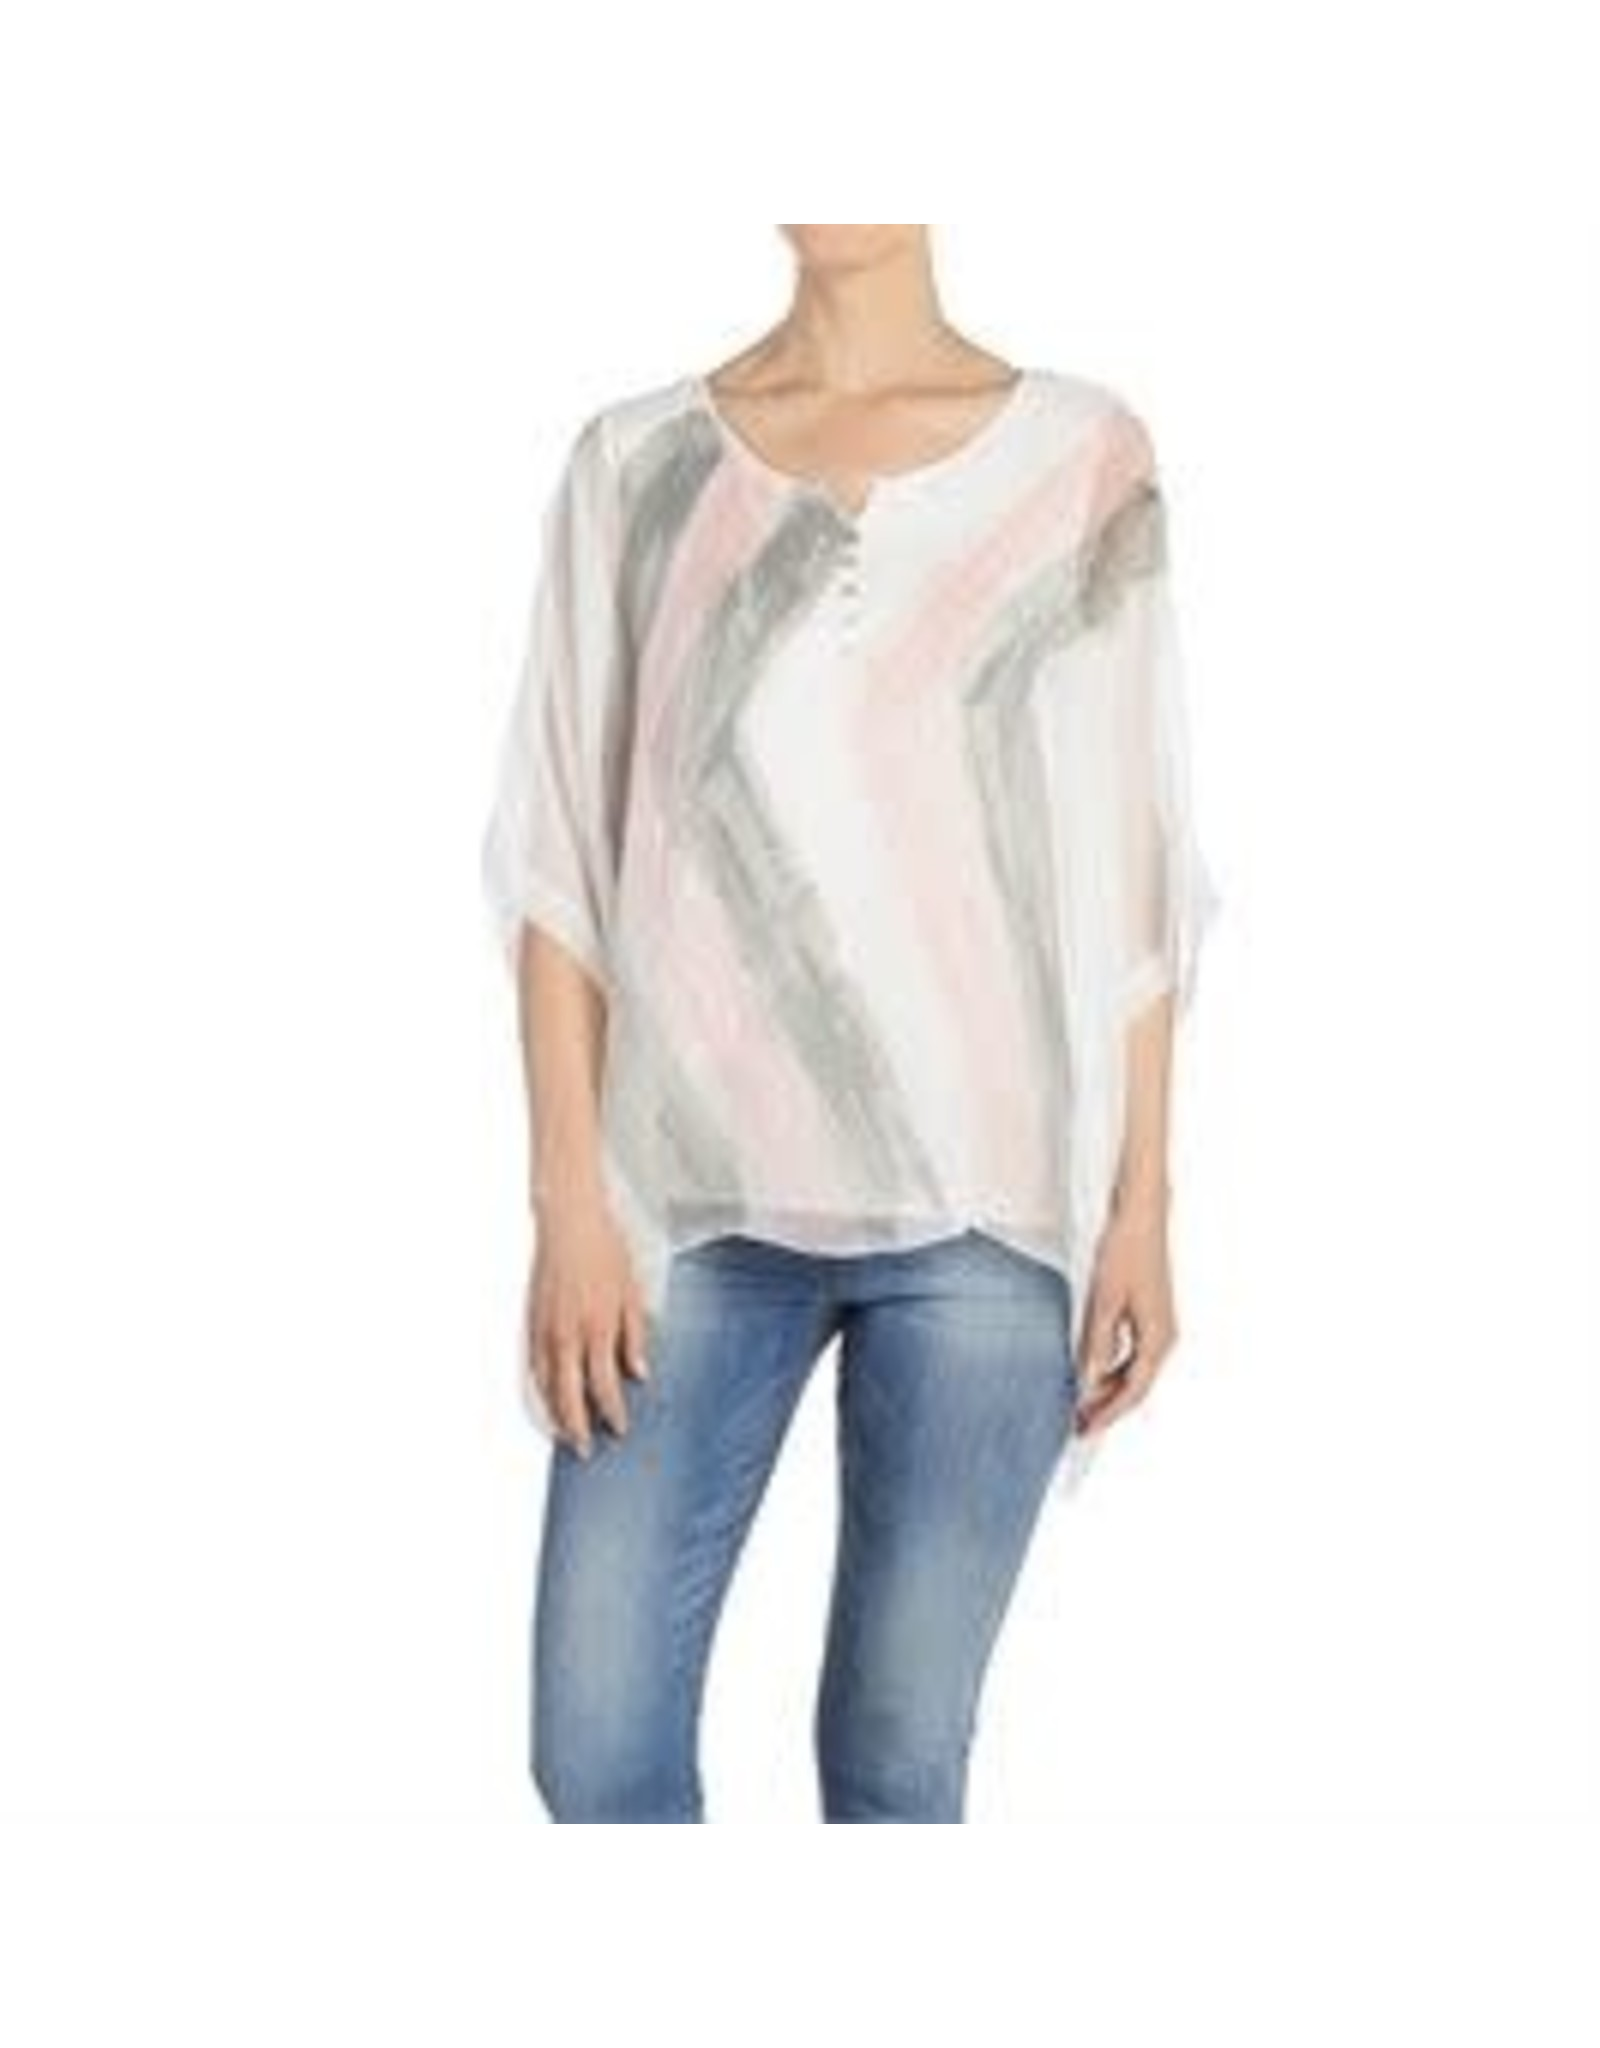 Coco & Carmen Button ZigZag Top